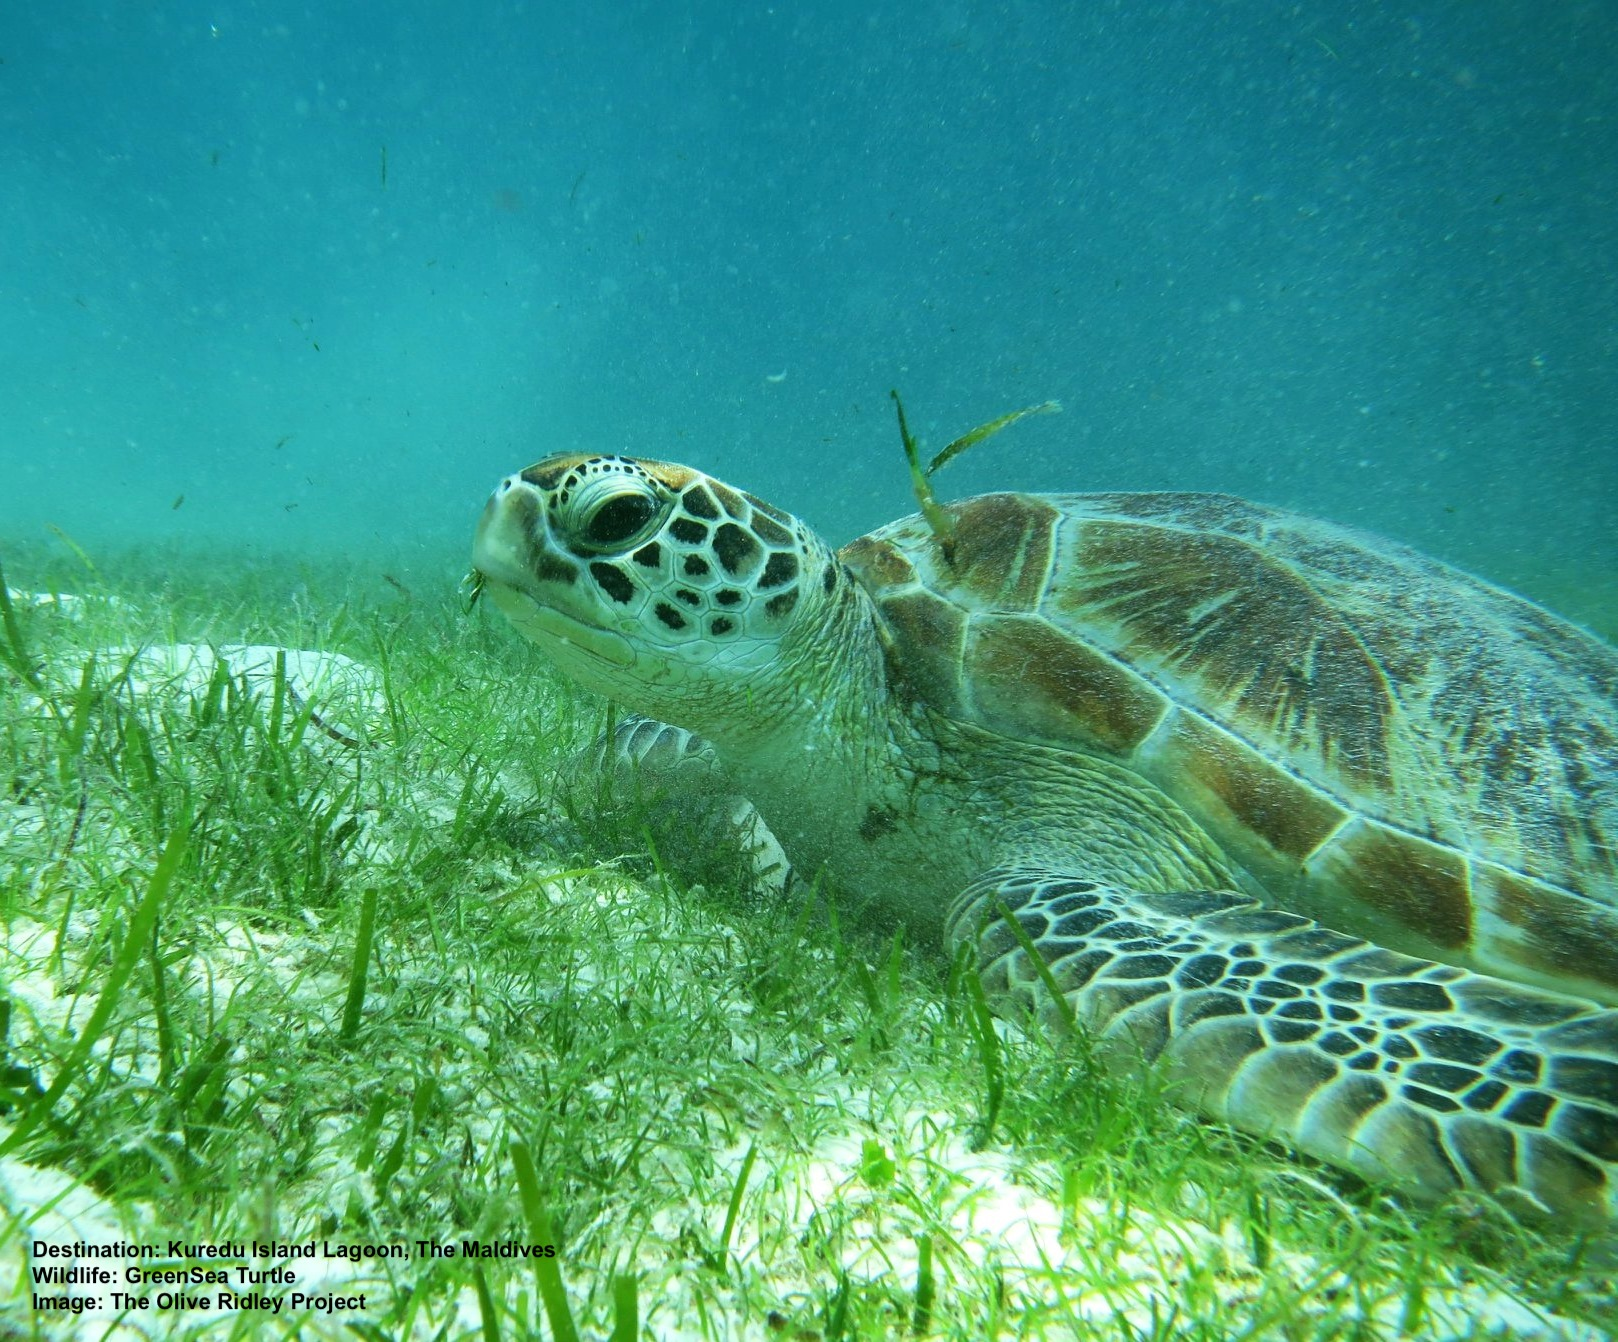 GRAZING SEA TURTLES, LIKE THIS GREEN SEA TURTLE, KEEP SEA GRASS BEDS HEALTHY. WHERE THE TURTLES HAVE DISAPPEARED THE AREA'S ECONOMY SUFFERS TURTLE-LESS SEA GRASS BEDS FORM ALGAE, FUNGI, SLIME MOLD AND OTHER TOURIST-DETRACTING ELEMENTS. IMAGE: KRISTINA LOOSEN, RESIDENT BIOLOGIST, LHAVIYANI ATOLL,  THE OLIVE RIDLEY PROJECT